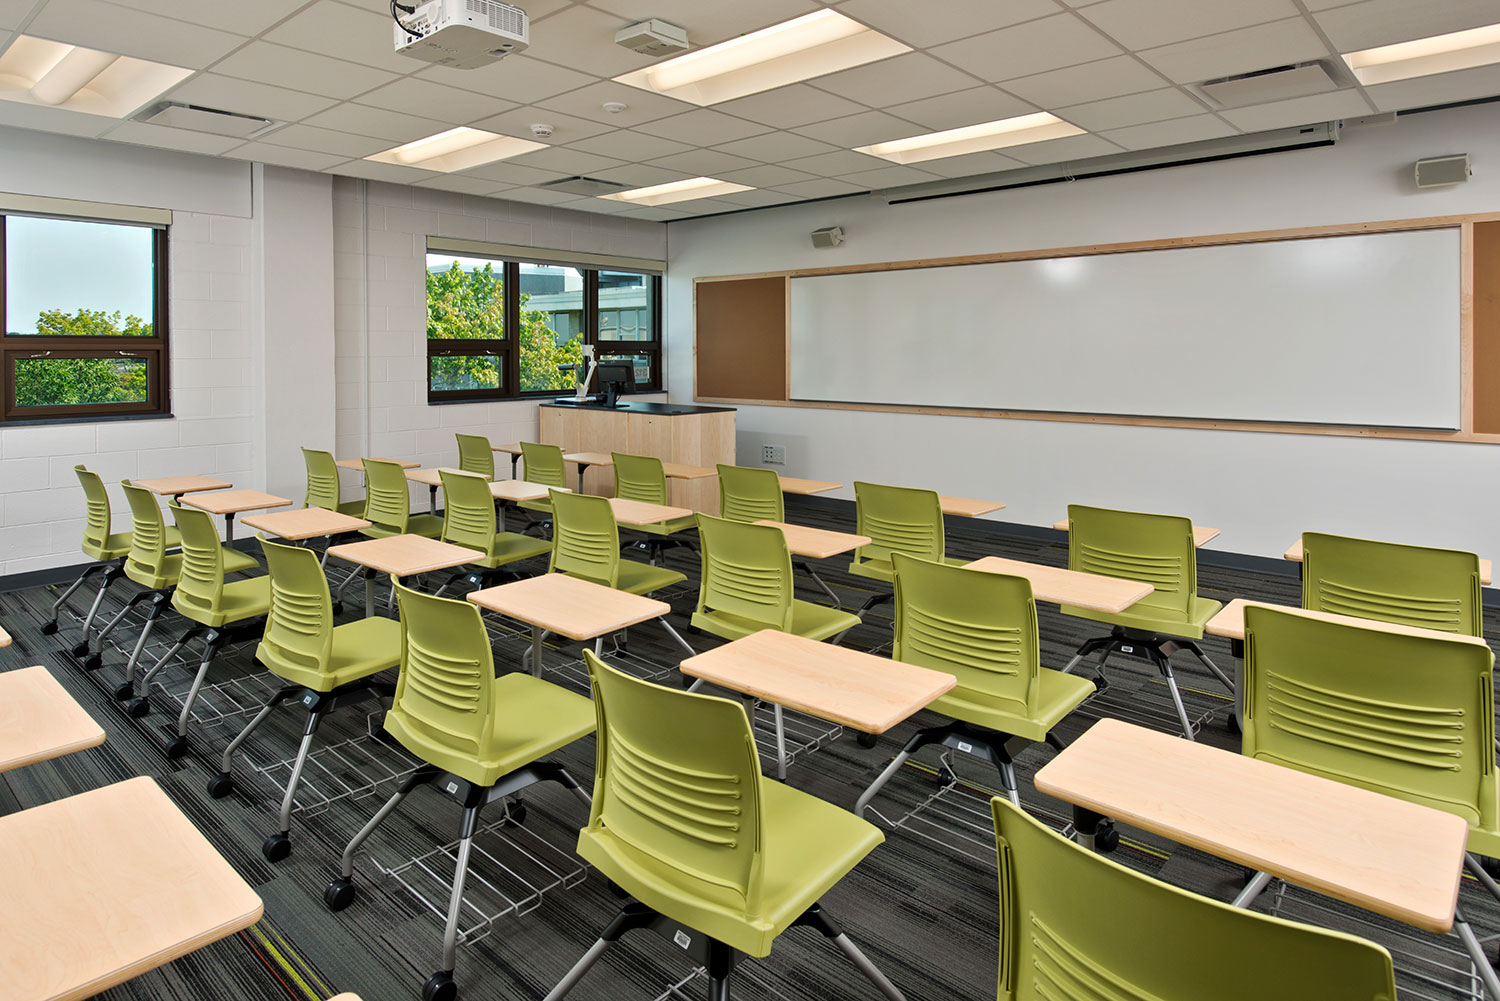 Teaching classroom at Mosaic Associates College Science Center design for Hudson Valley Community College in Troy, New York.